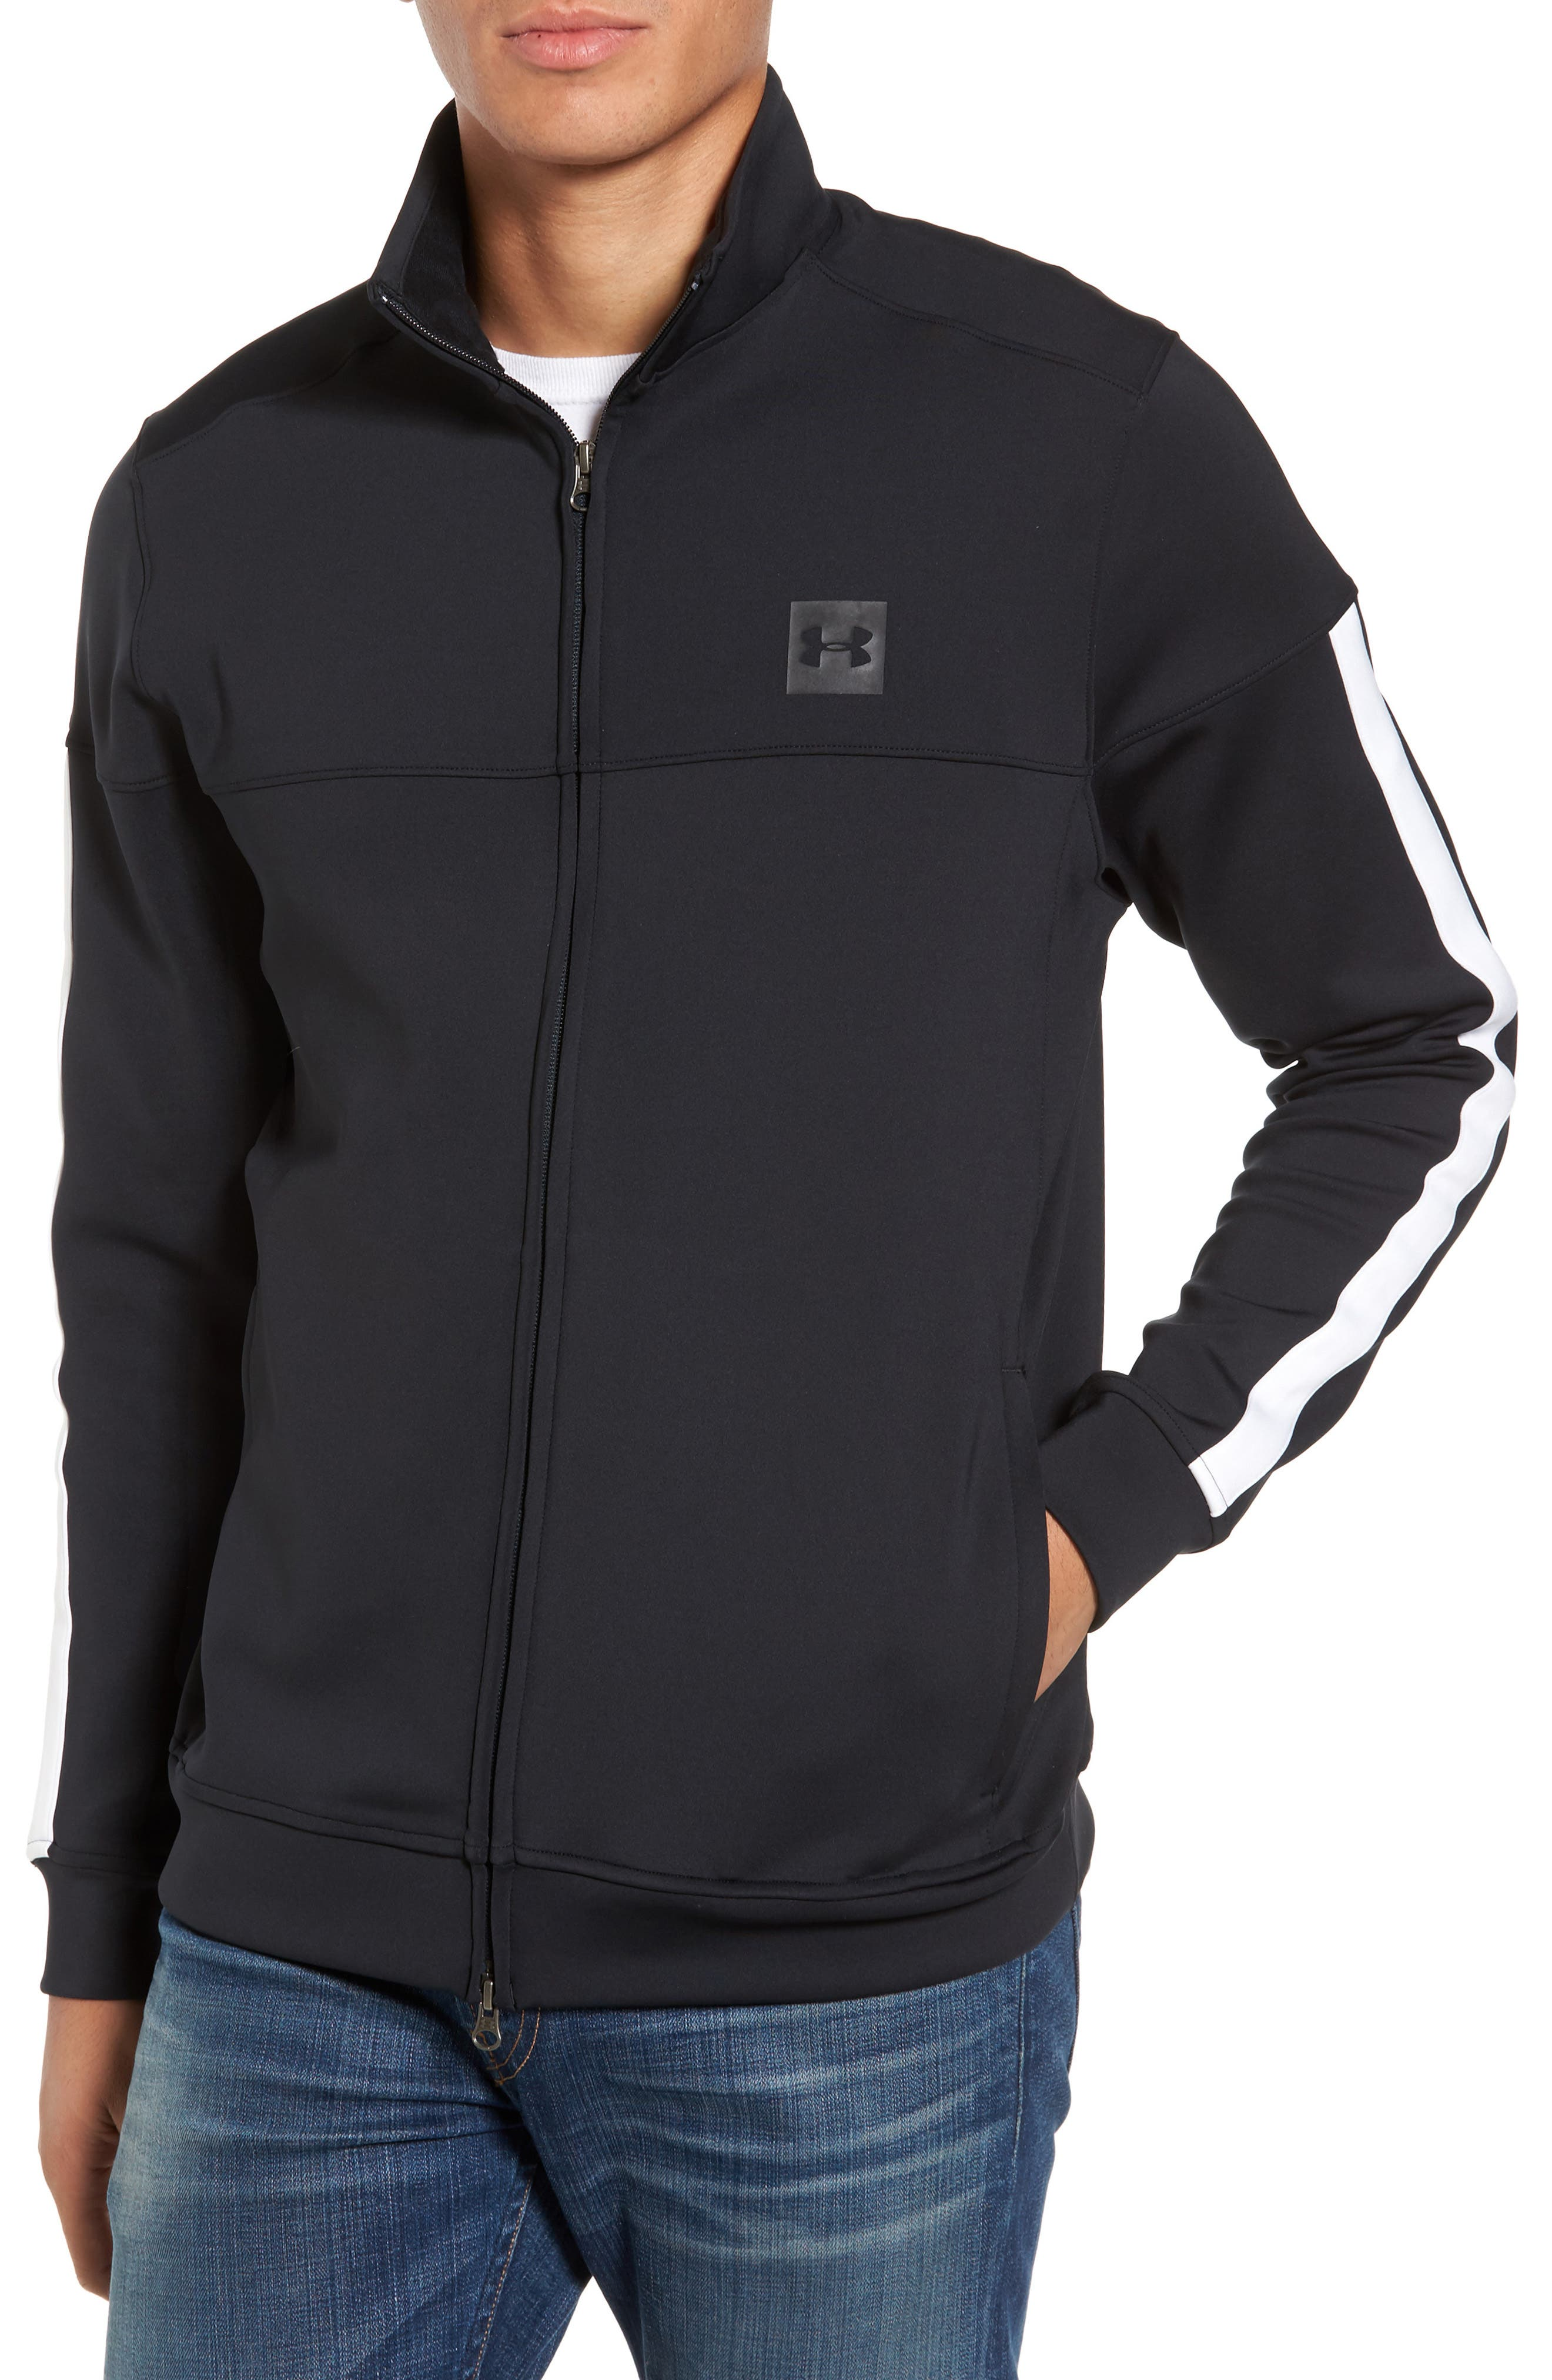 Alternate Image 1 Selected - Under Armour Sportstyle Track Jacket